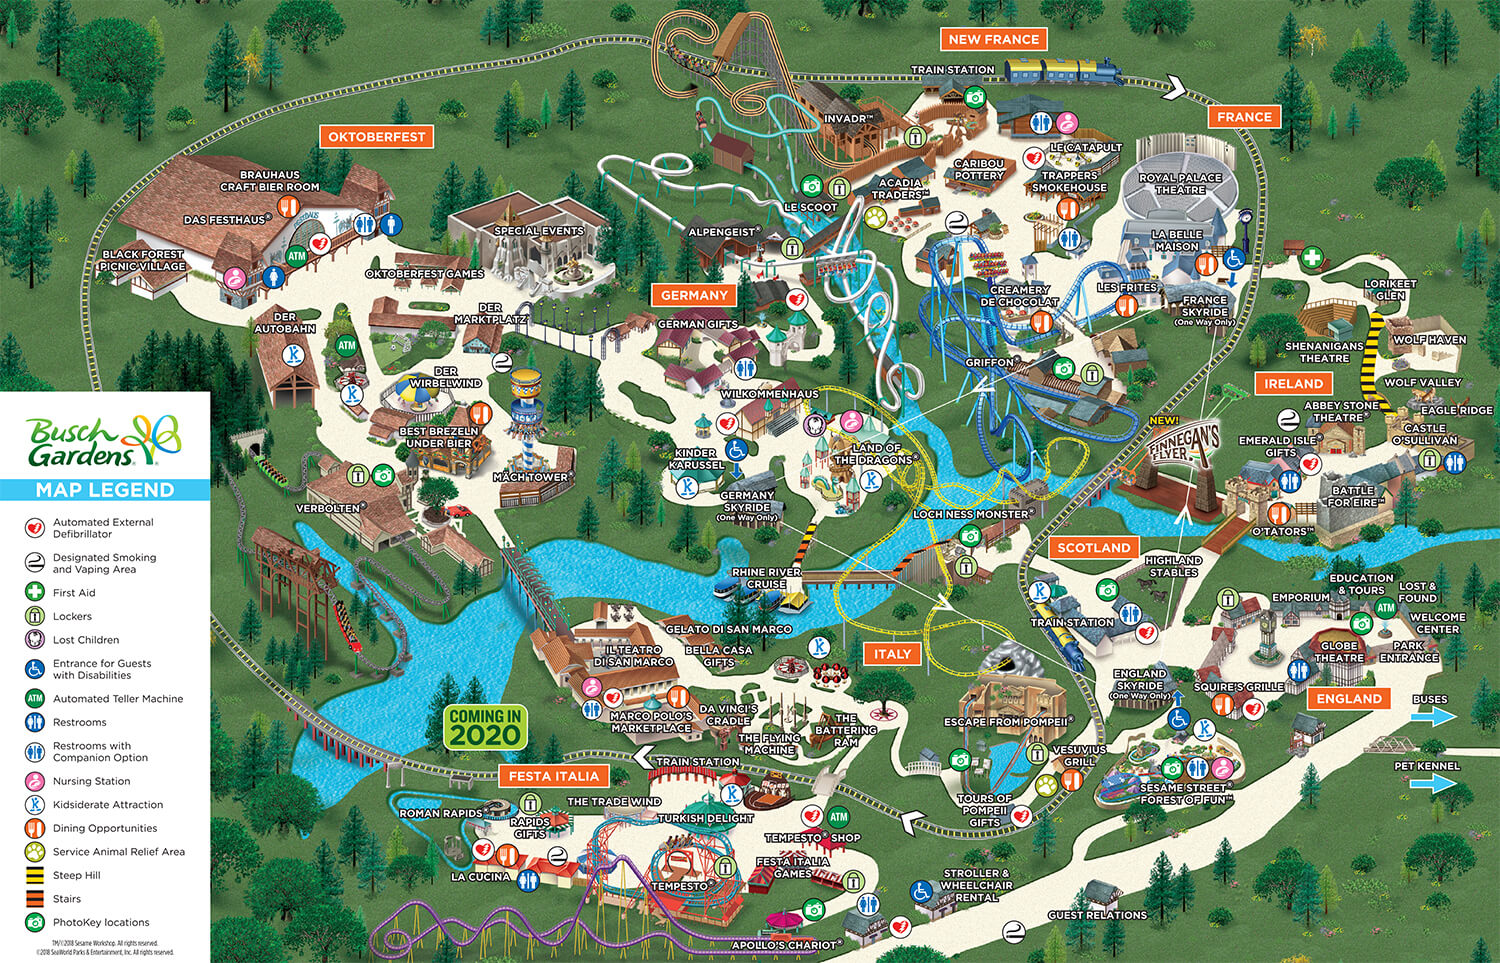 michigan's adventure map, busch gardens map, legoland map, canobie lake park map, idlewild and soak zone map, six flags map, hersheypark map, kings island map, disneyland map, knoebels map, knott's berry farm map, carowinds map, king of prussia mall map, adventure island map, aquatica map, discovery cove map, kings dominion map, dorney park map, cedar point map, peddler's village map, on sesame place map